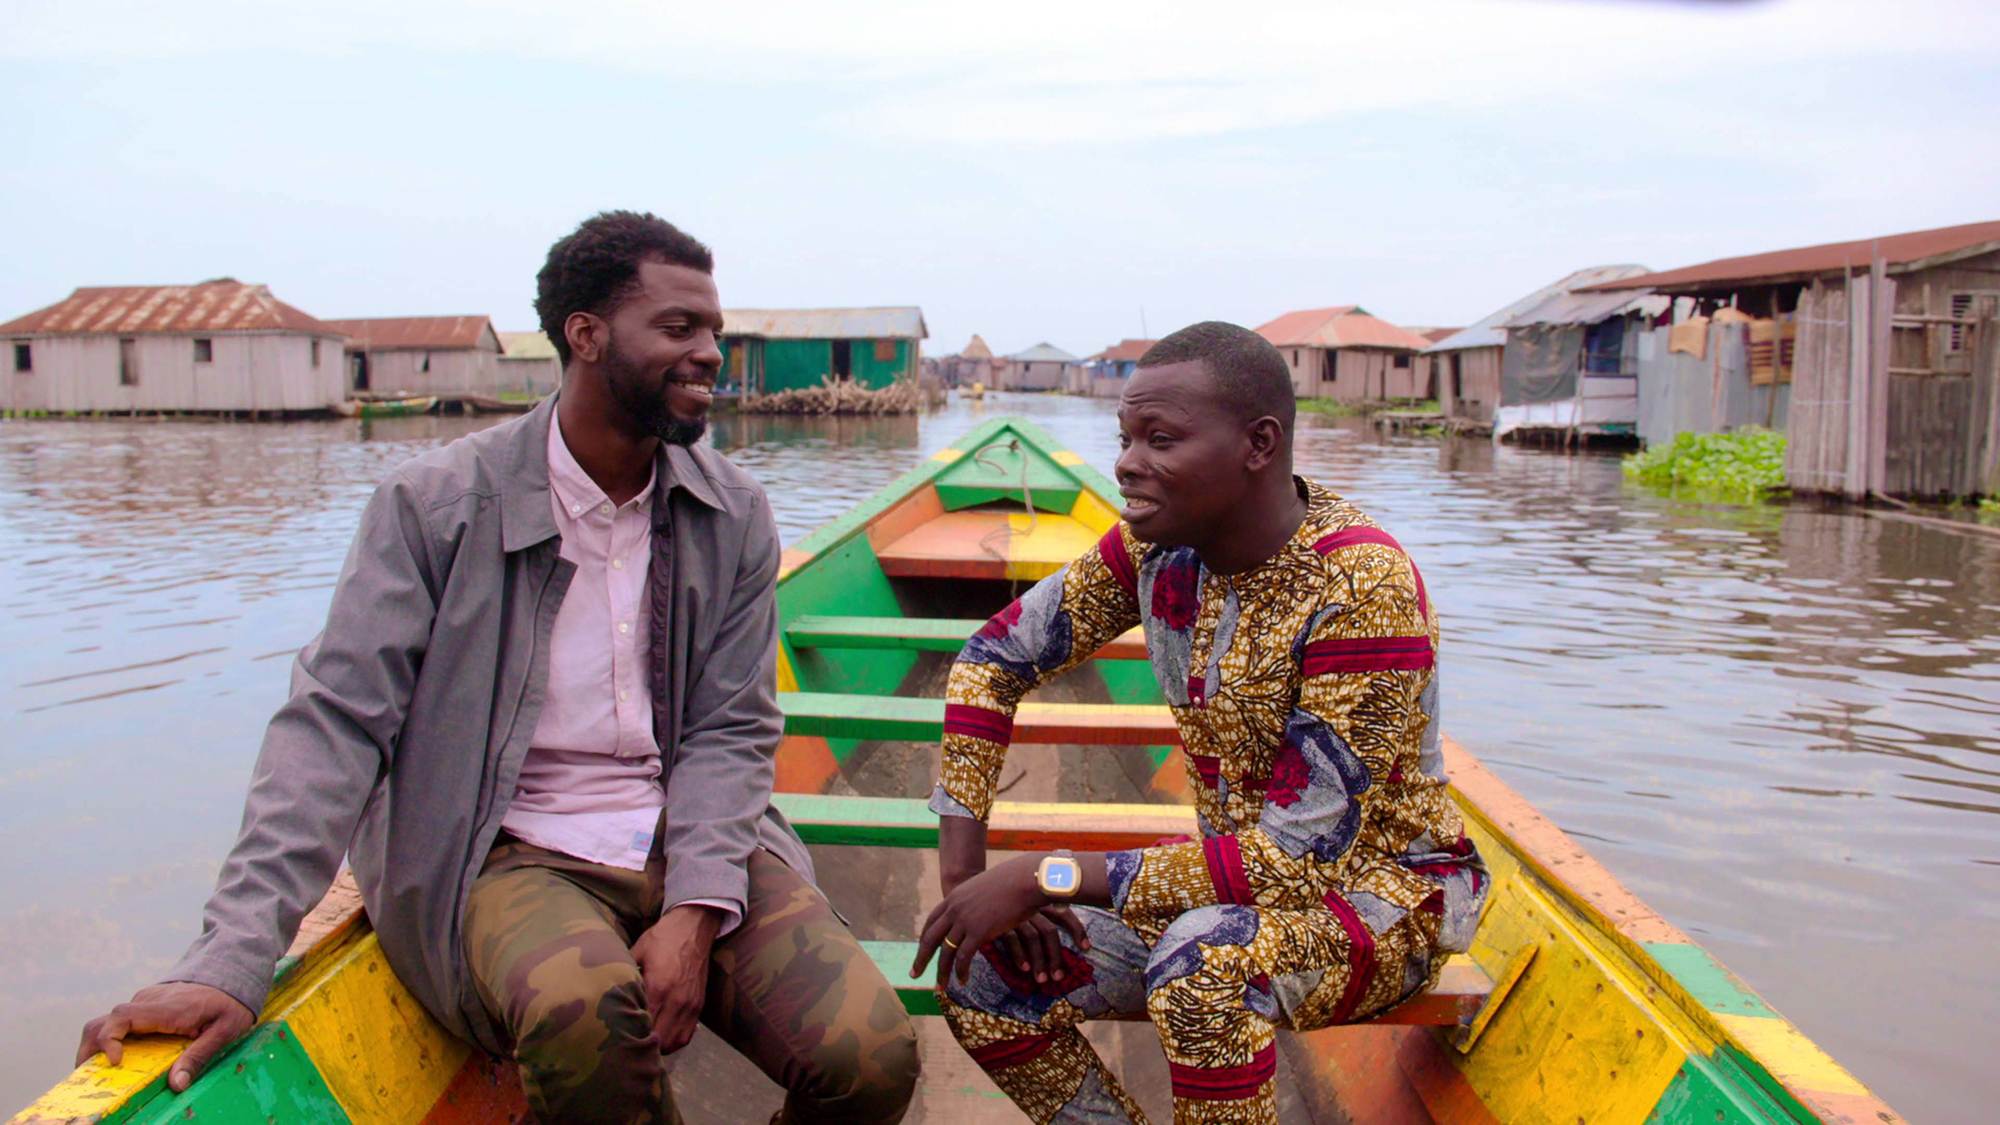 Eric Kiki and Stephen Satterfield on a boat in Ganvié, a lake village in Benin, Africa